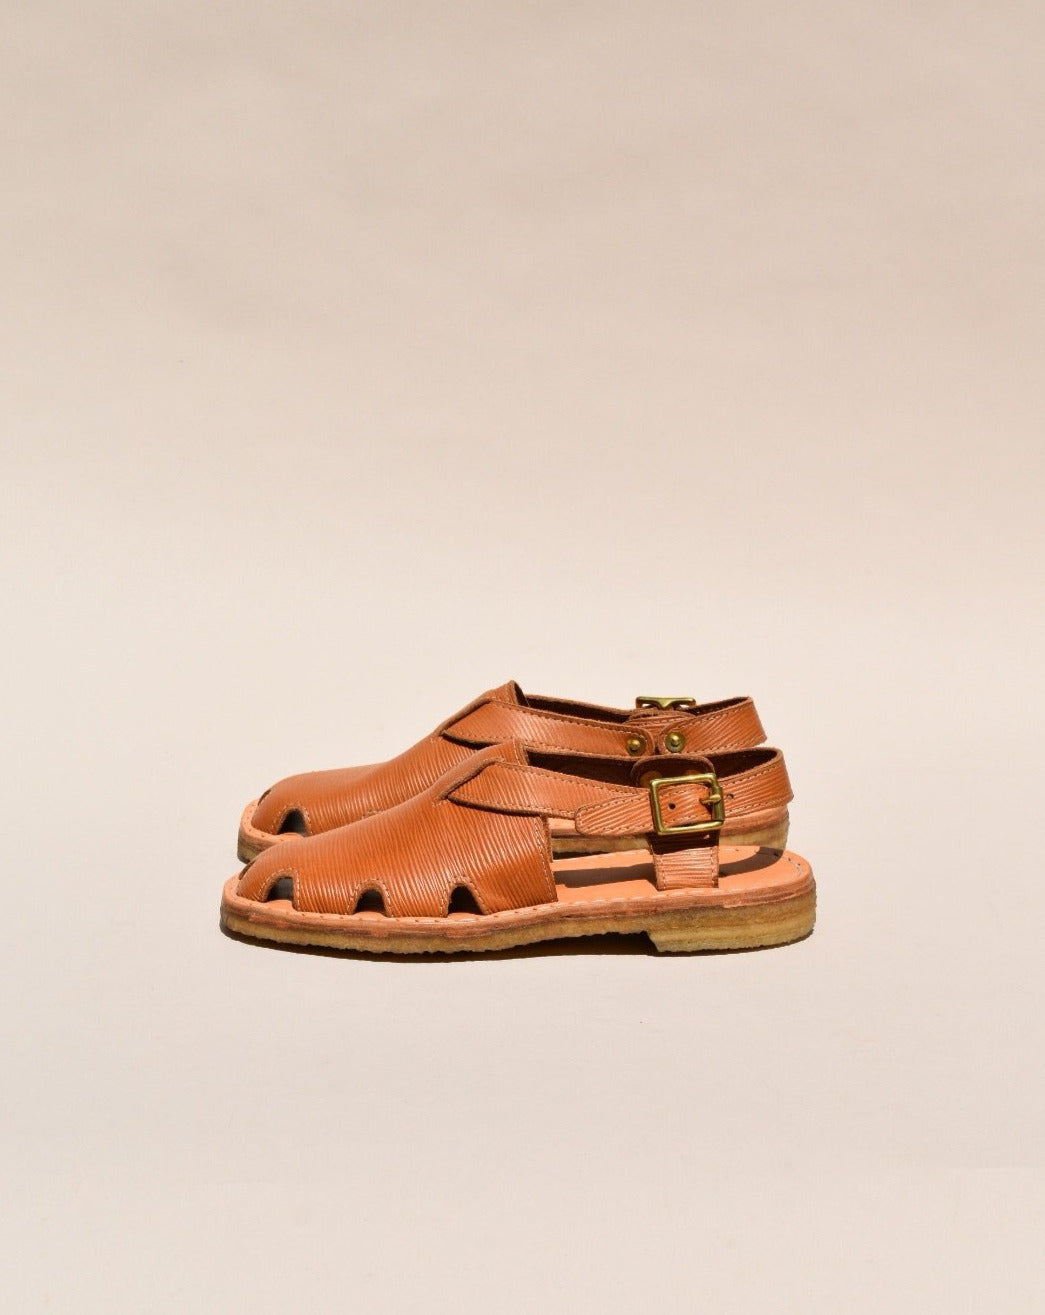 Crepe Soled Leather Fisherman's Sandals